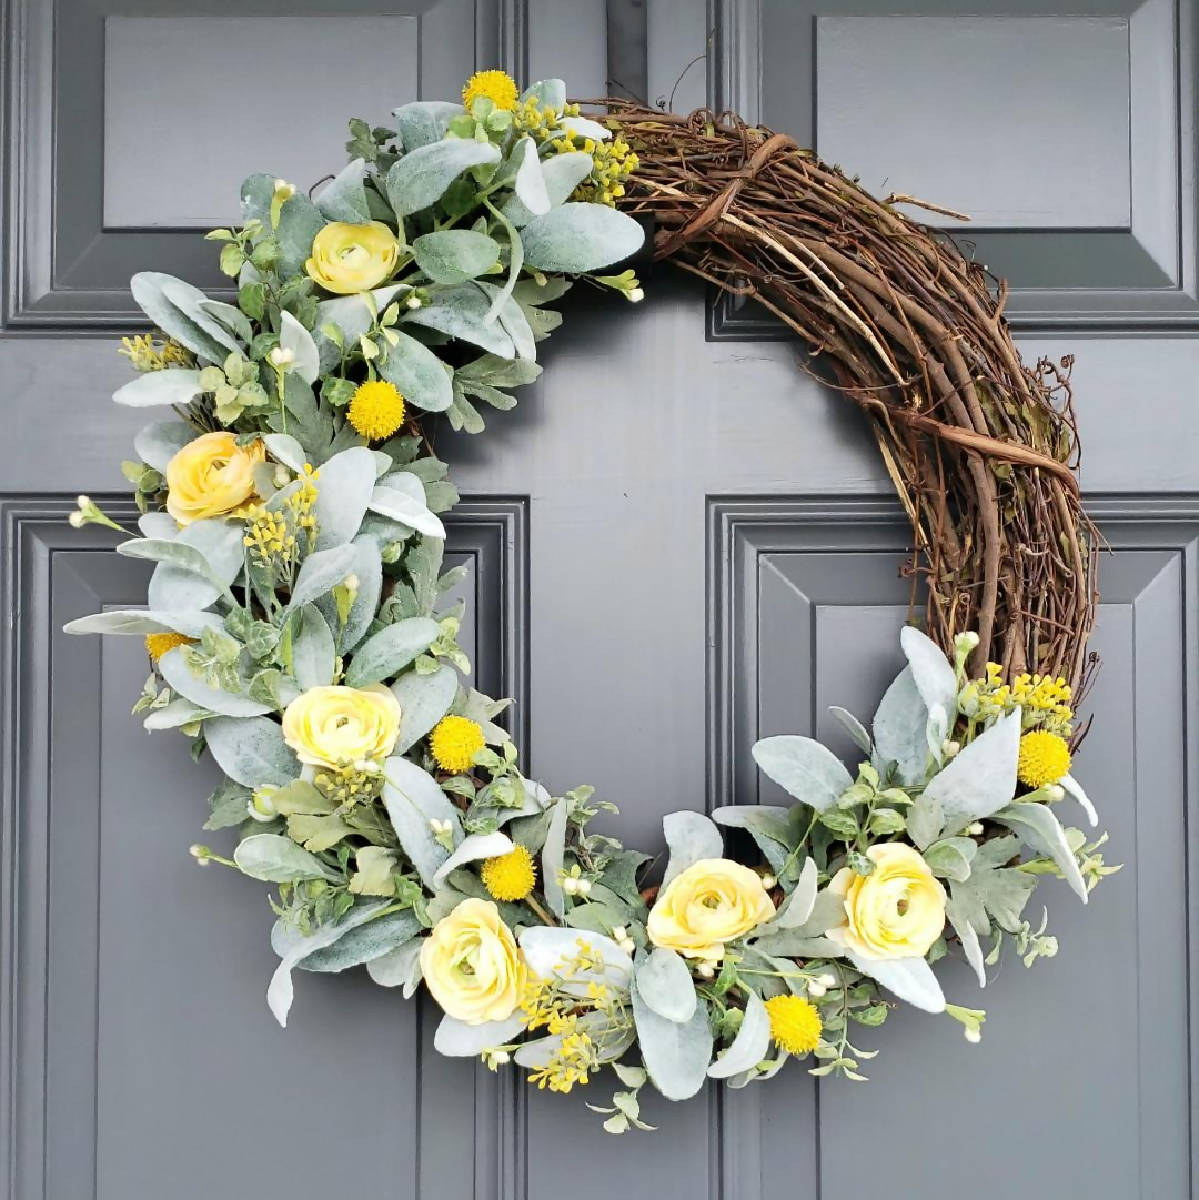 Custom Front Door Wreath 18 inches - made cleveland